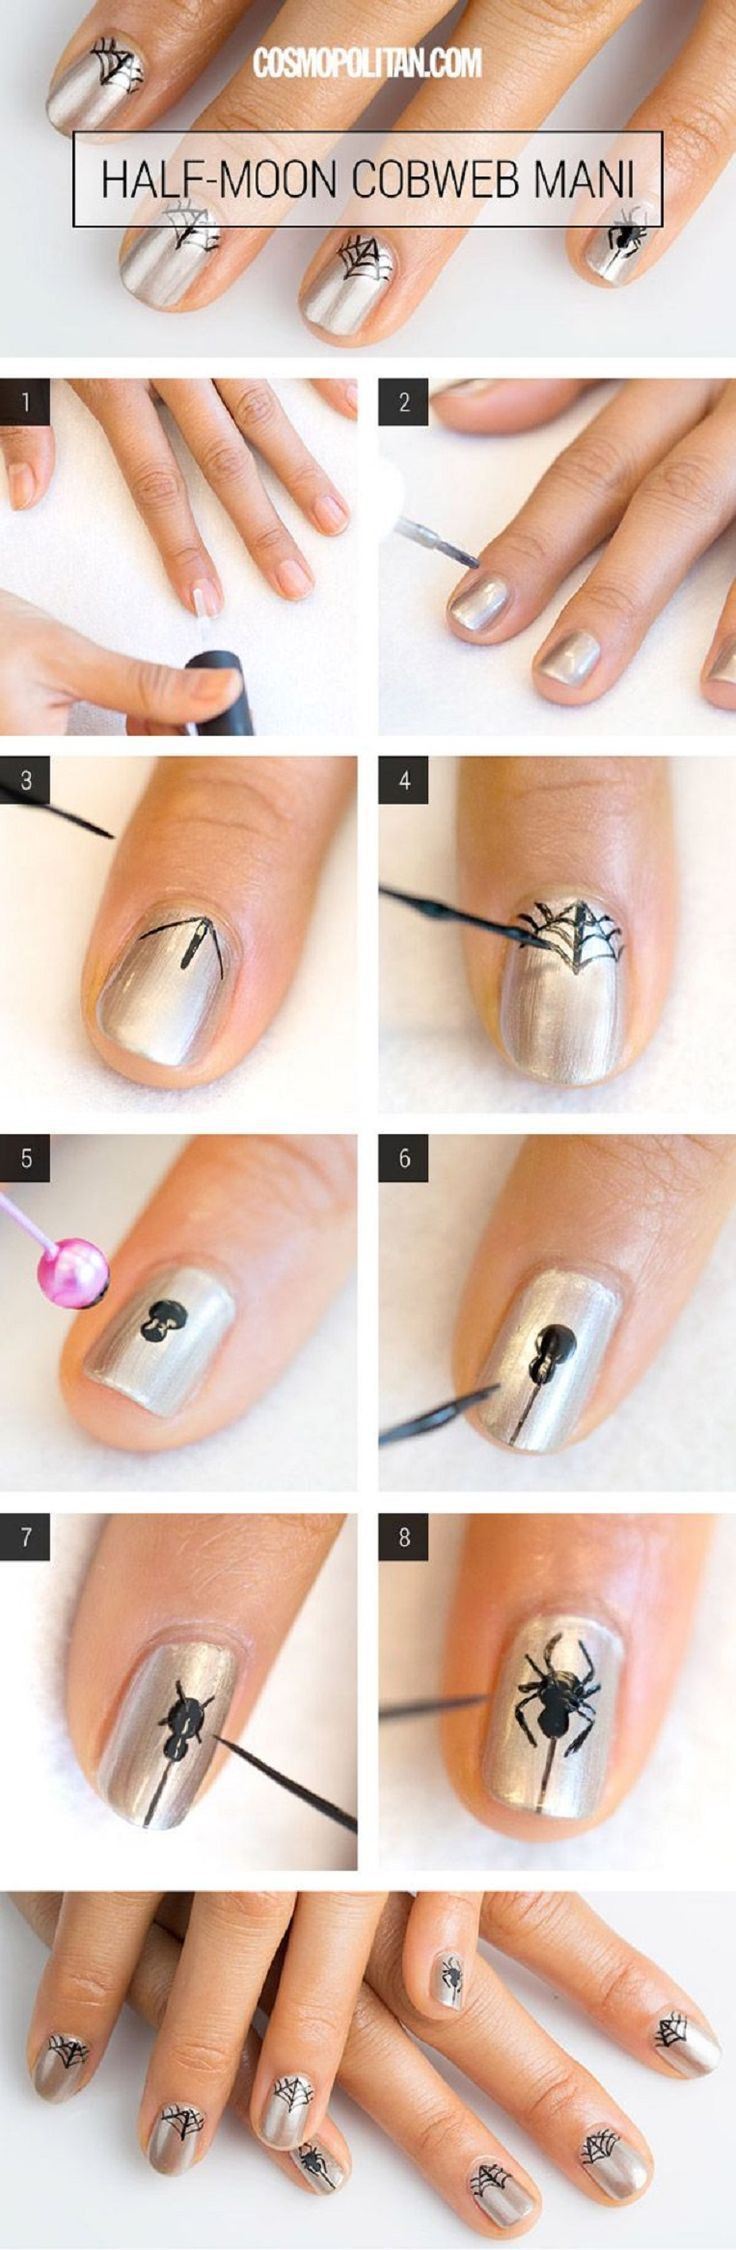 Halloween Nail Art Tutorial I #nails #nailpolish #polish #howto #tutorial #beauty #halloween #nailart www.pampadour.com